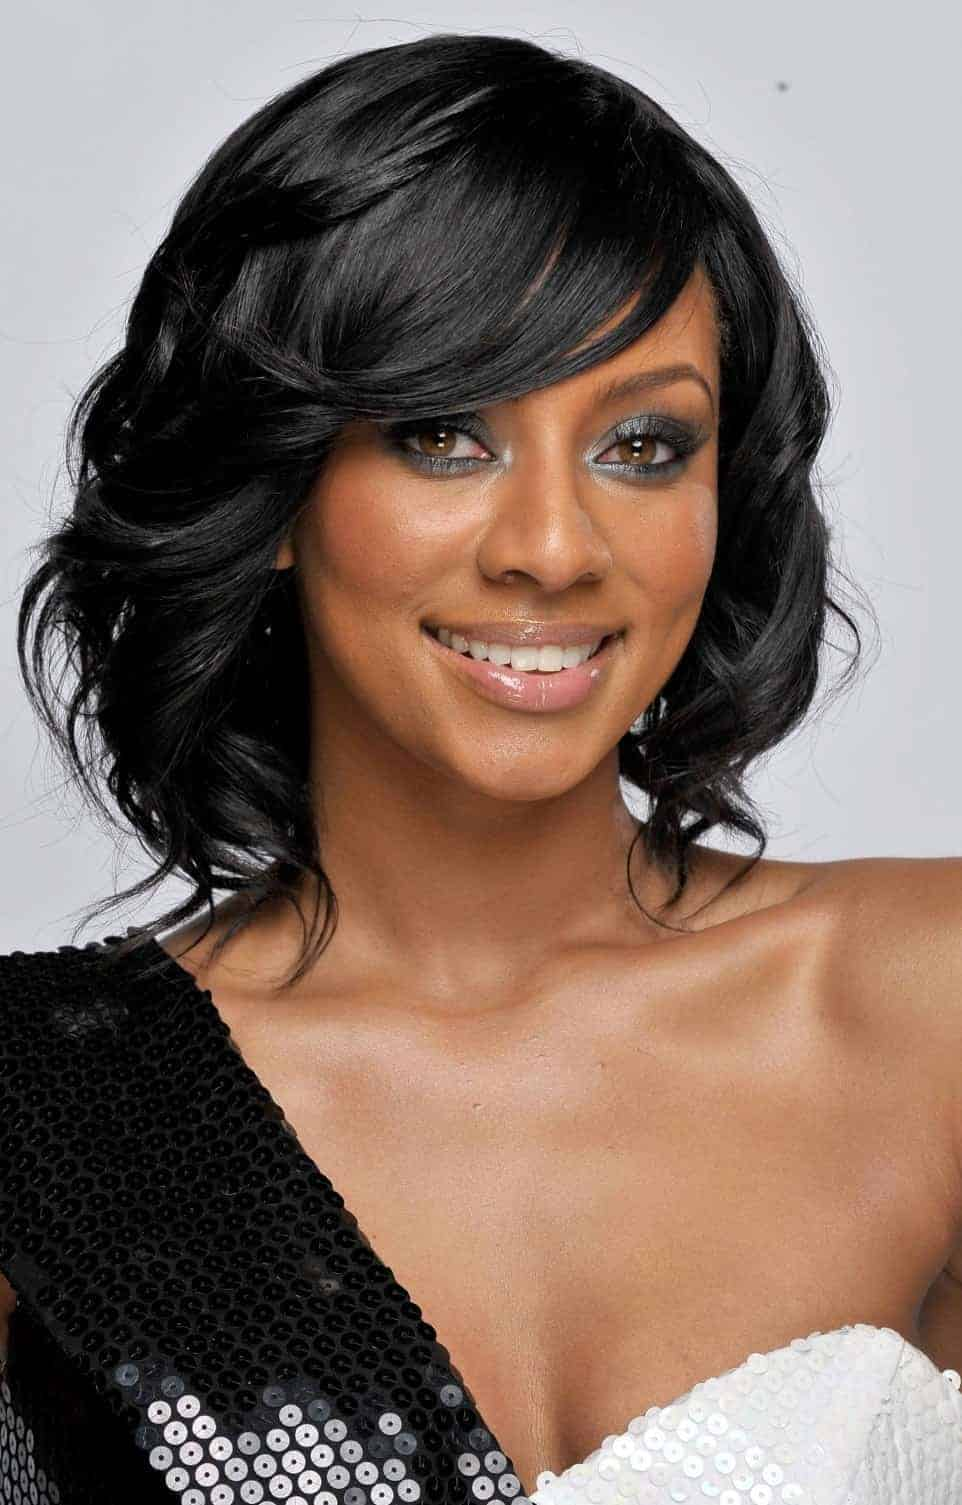 Short Black Women hairstyles with Layered